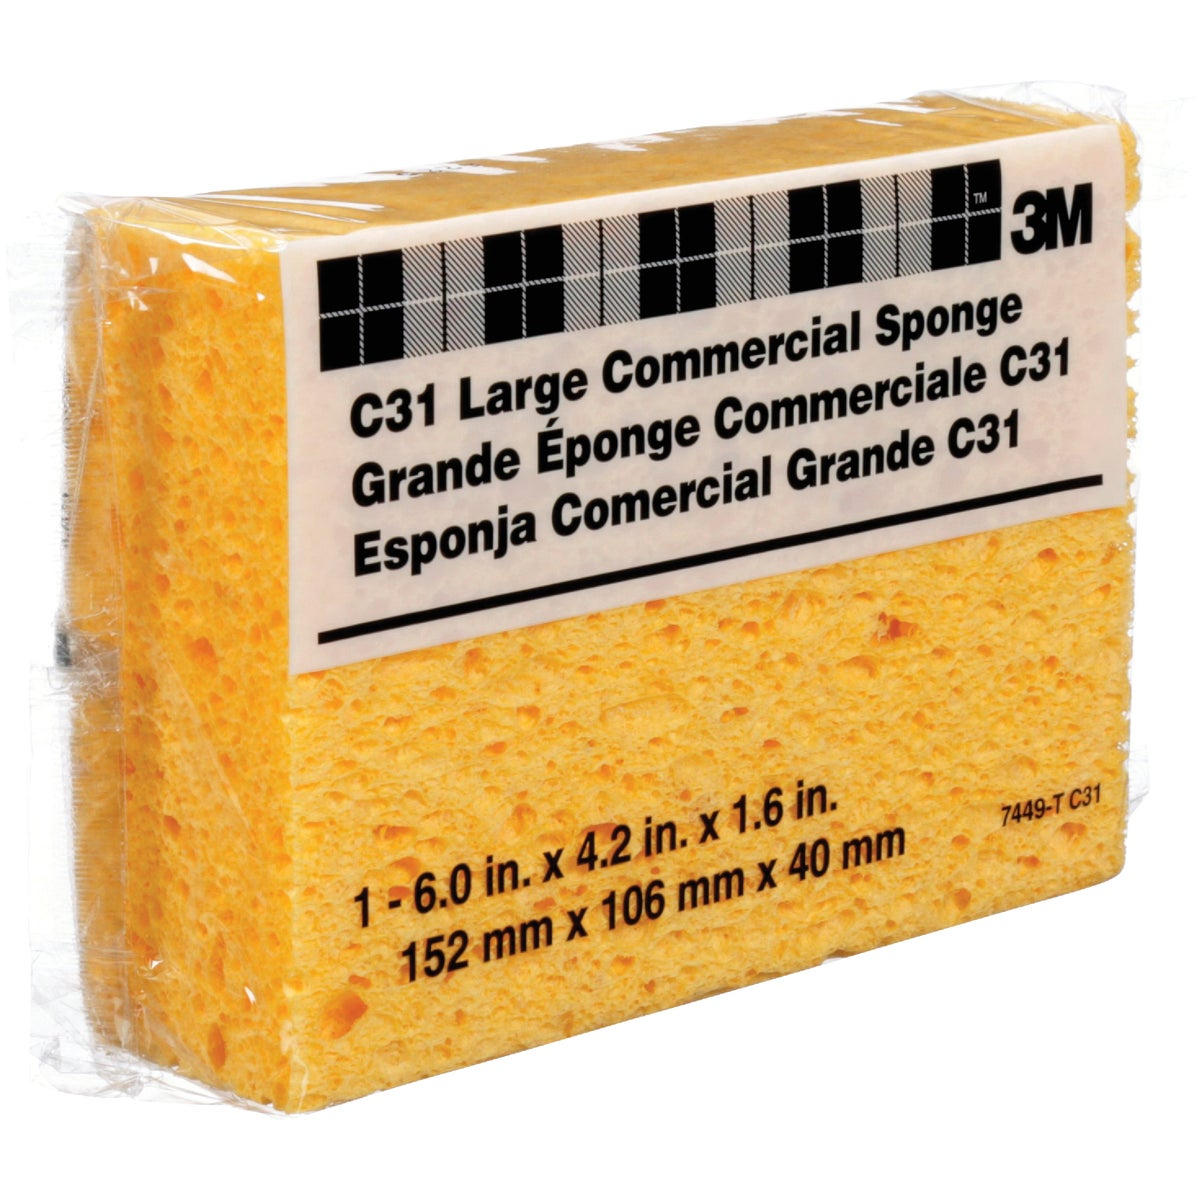 LARGE COMMERCIAL SPONGE - C31 by 3m Co